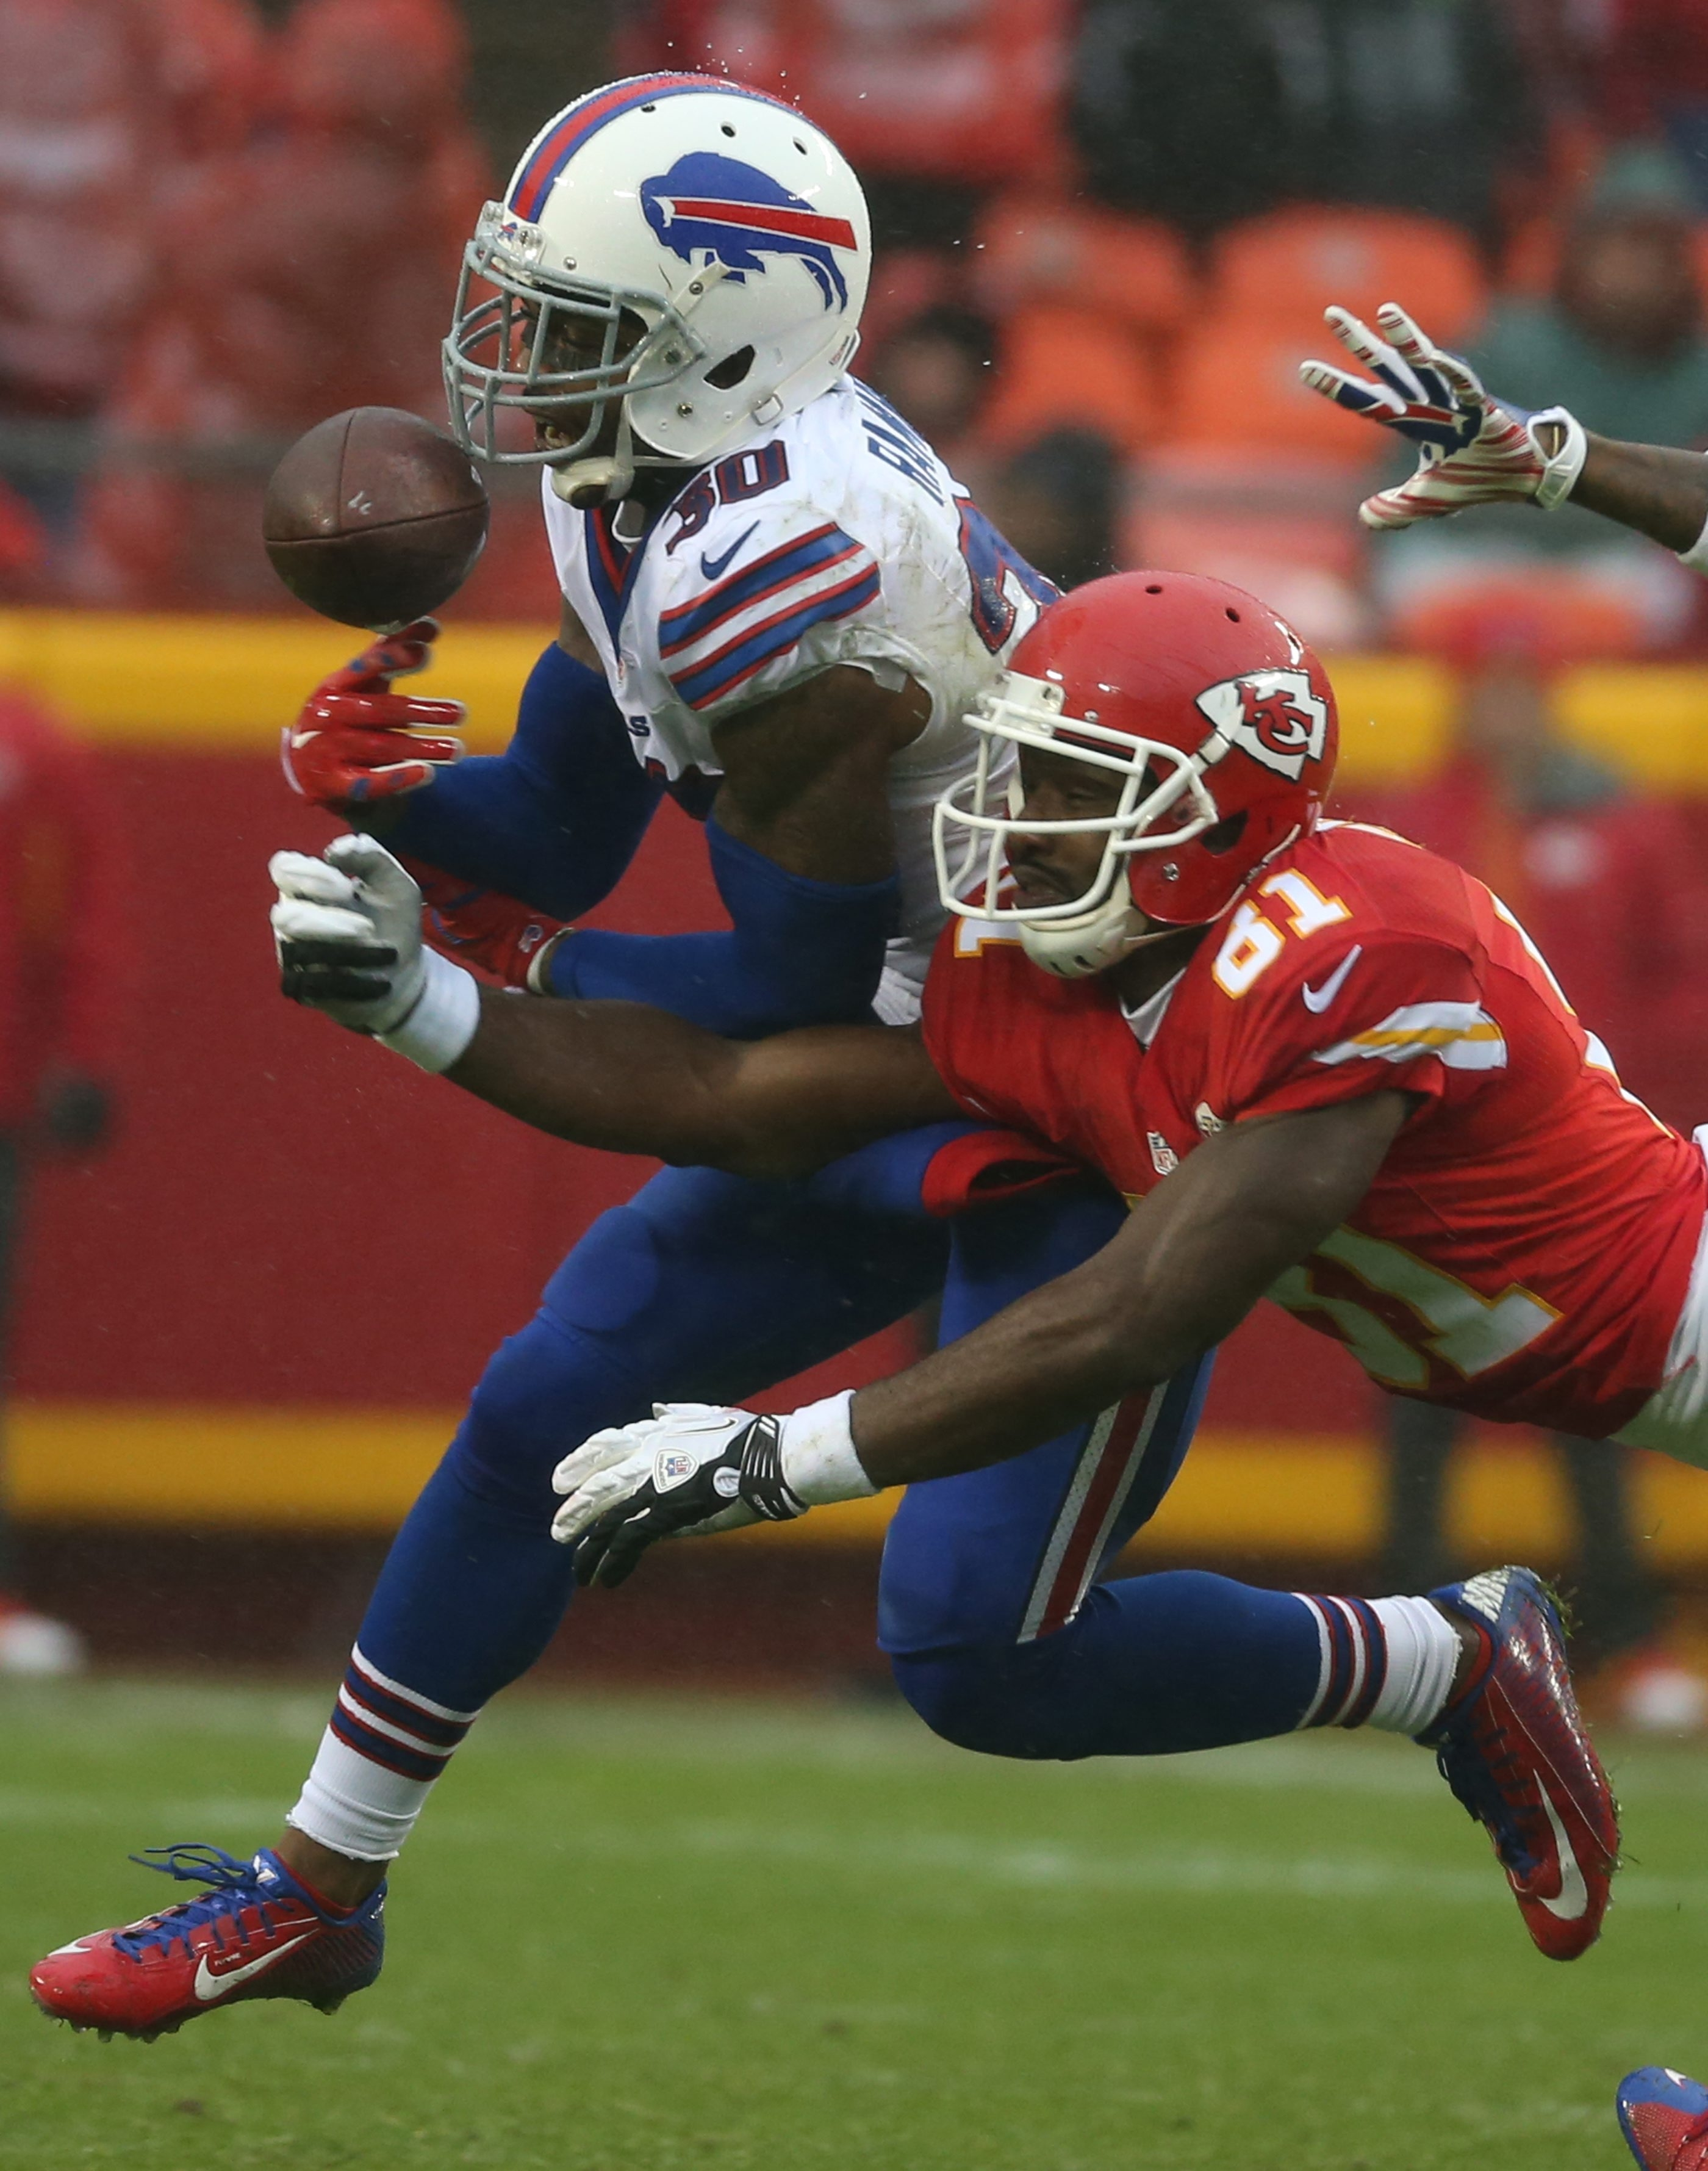 Bills strong safety Bacarri Rambo drops a interception and possible pick-six in front of Kansas City Chiefs wide receiver Jason Avant during the second quarter at Arrowhead Stadium.